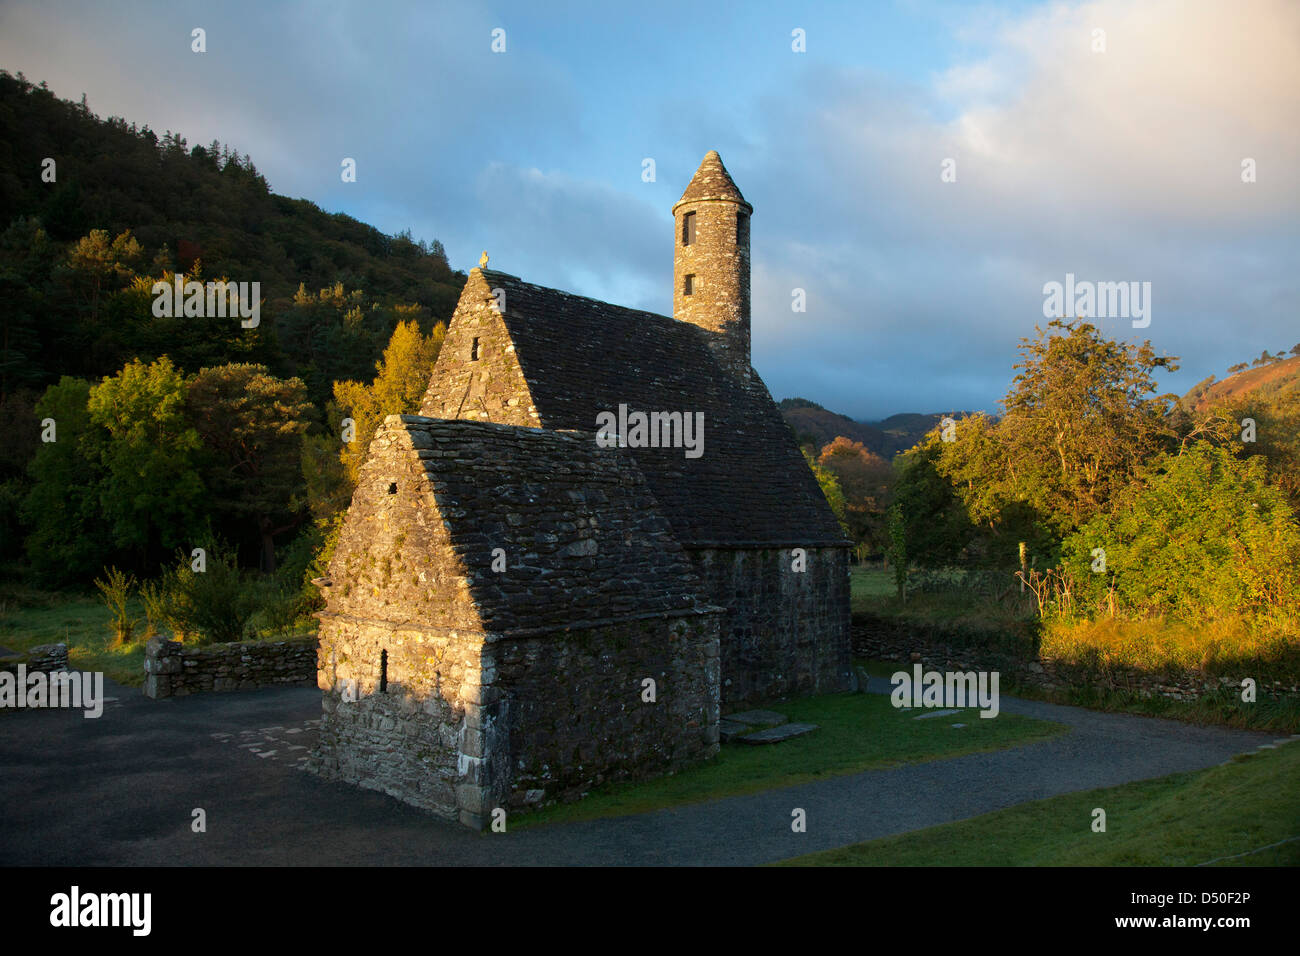 St Kevin's church and round tower, Glendalough monastic site, Co Wicklow, Ireland. - Stock Image